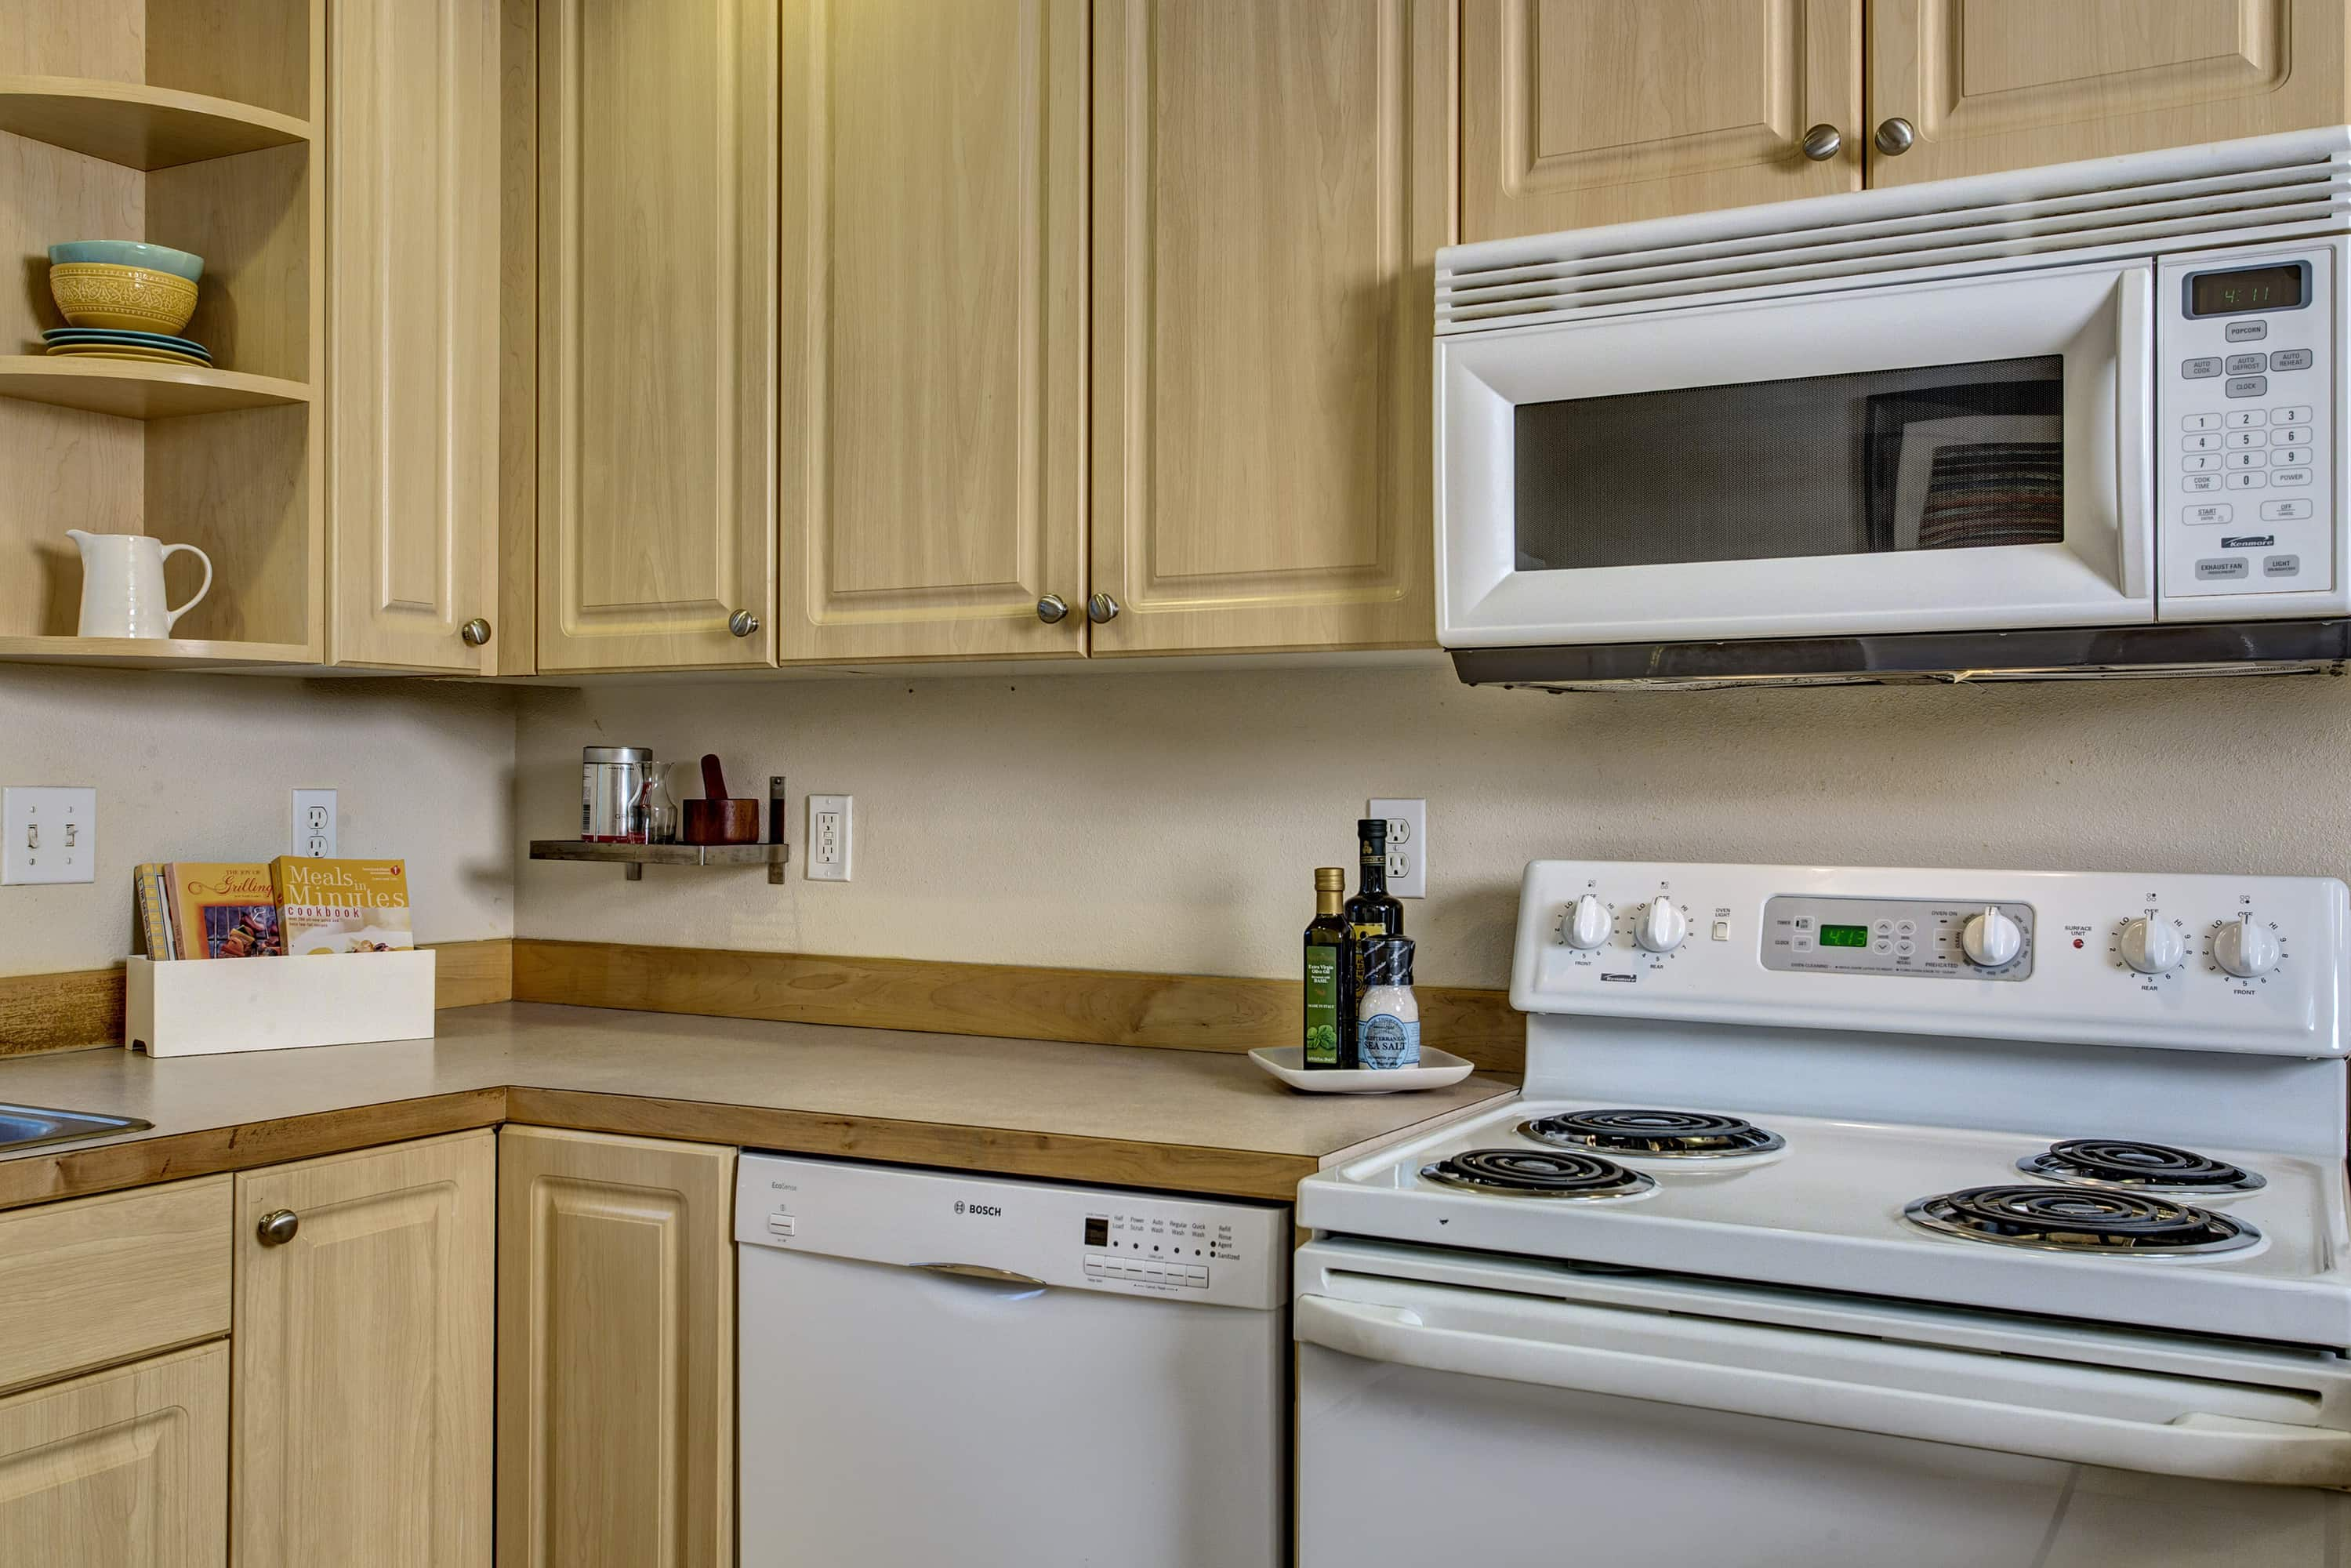 Fully equipped kitchen with range, microwave, dishwasher and refrigerator.